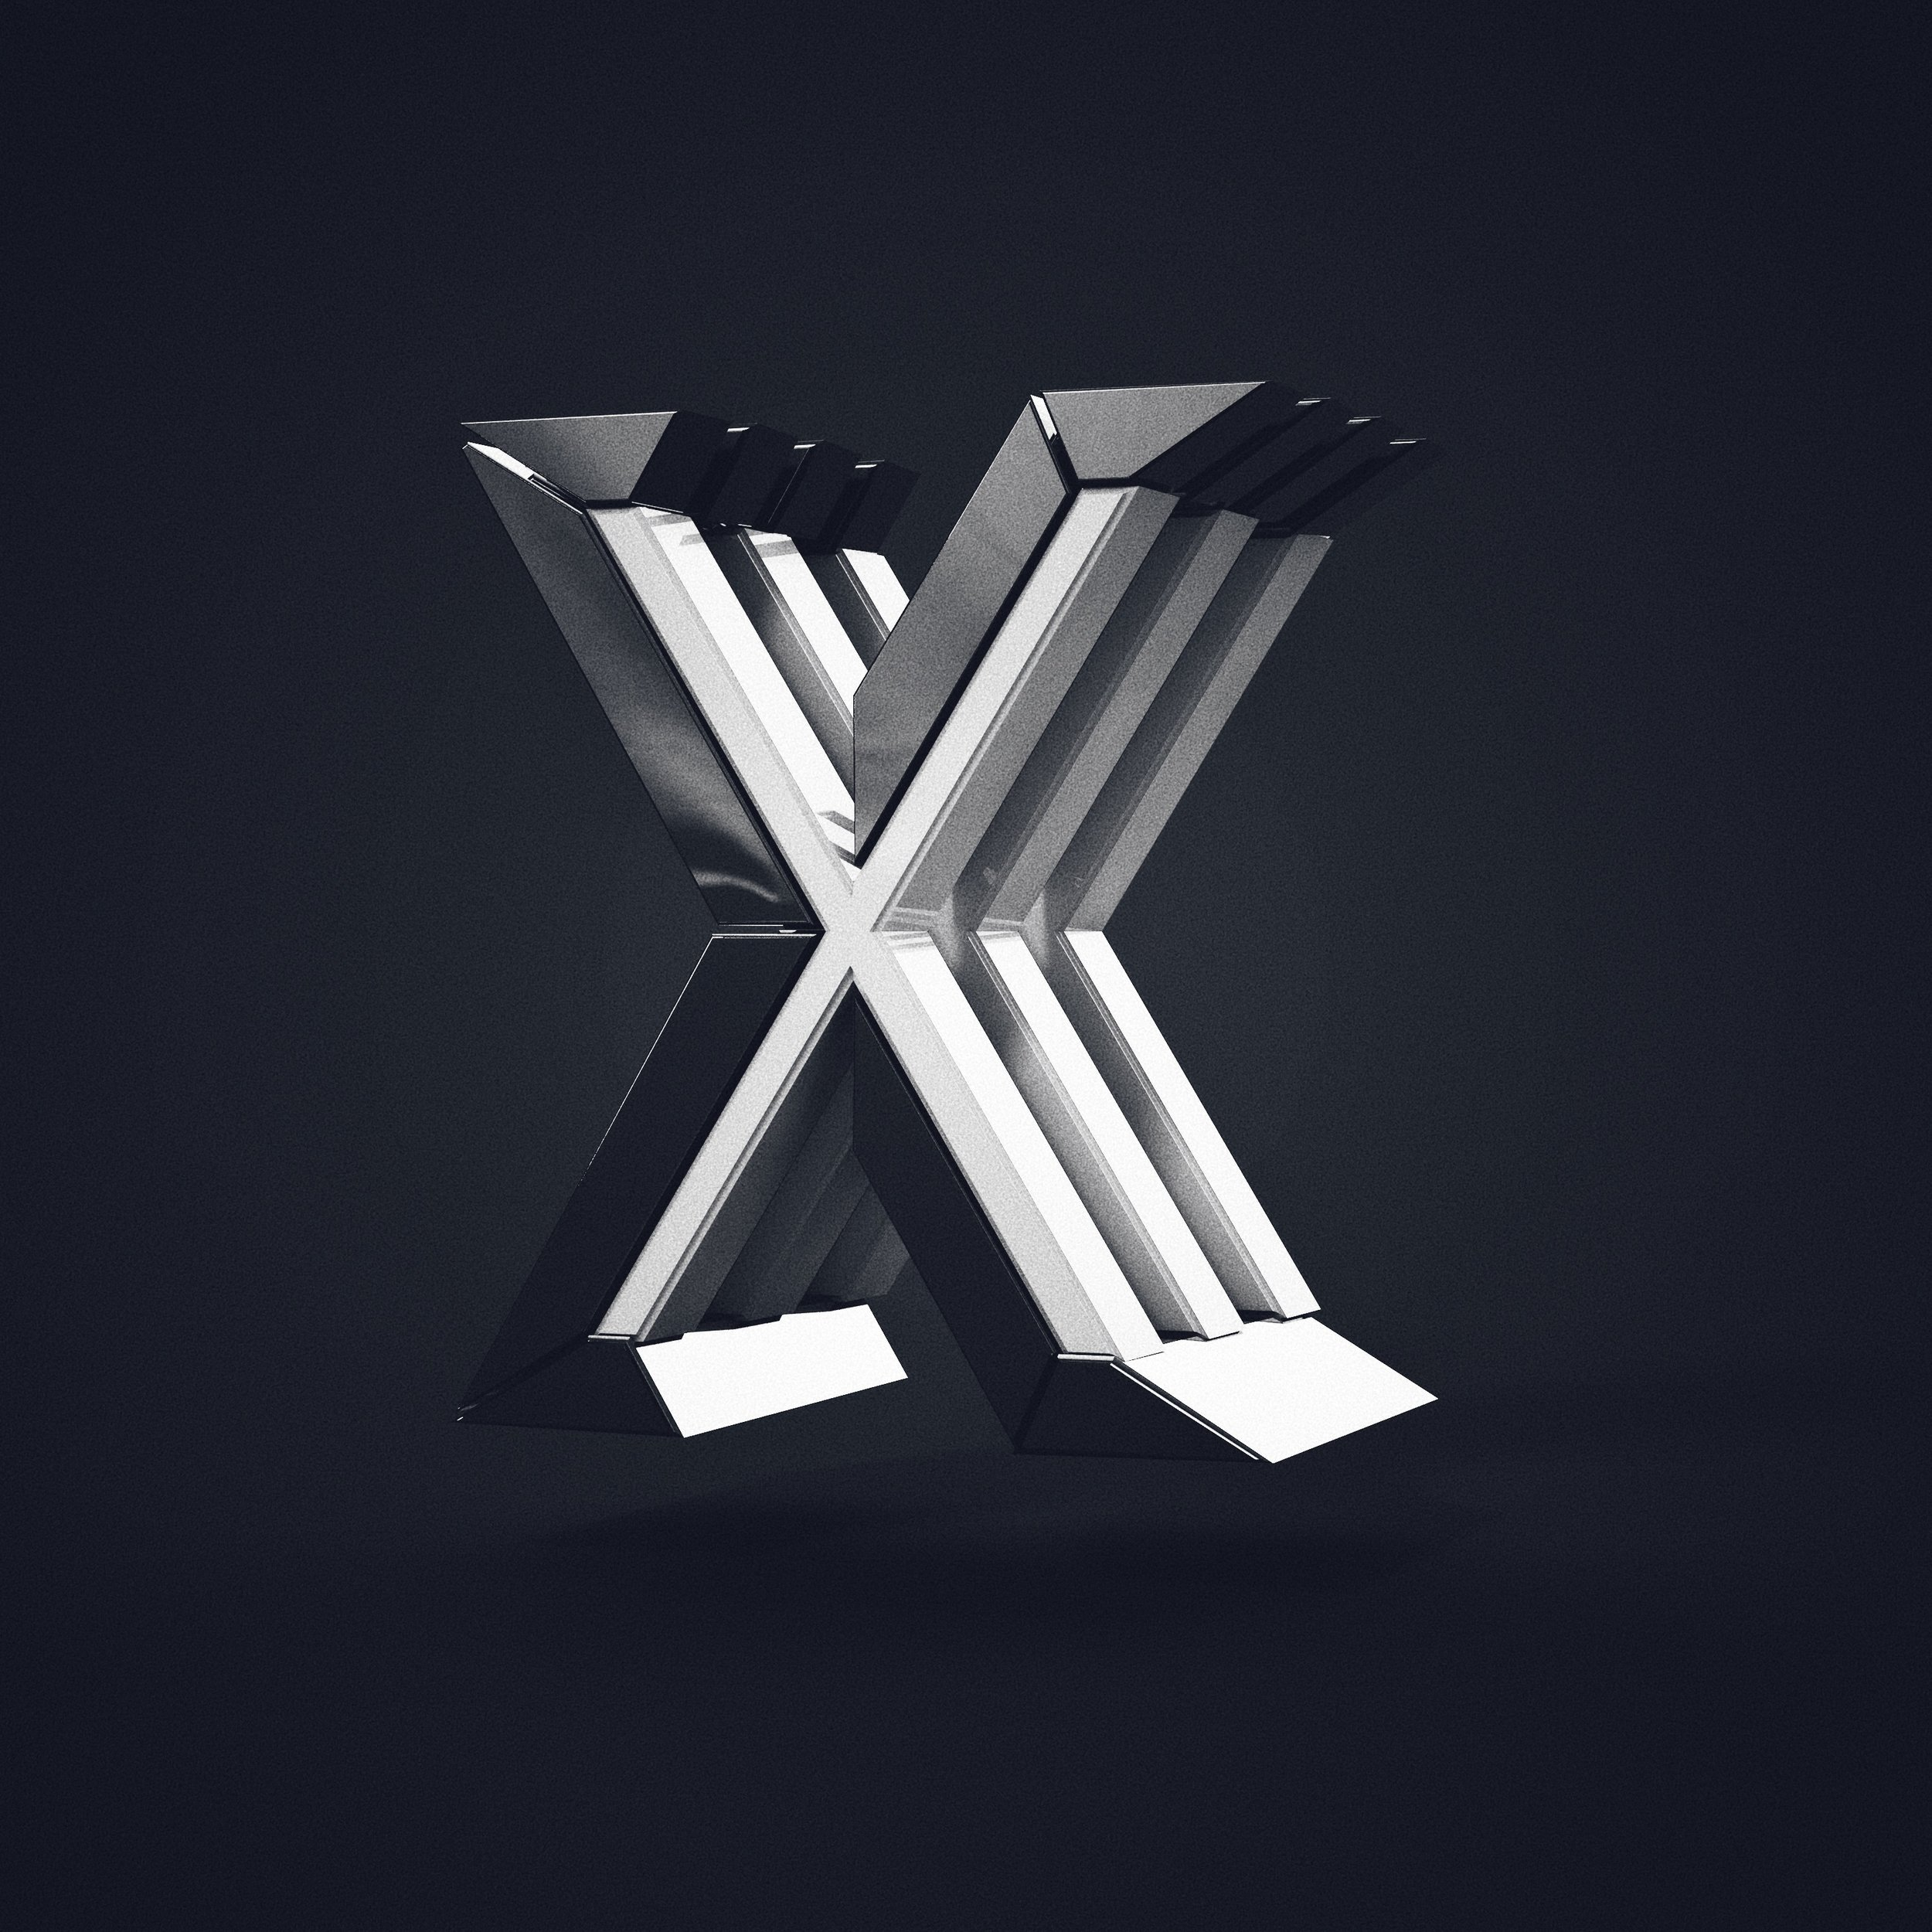 Day 24: Letter X